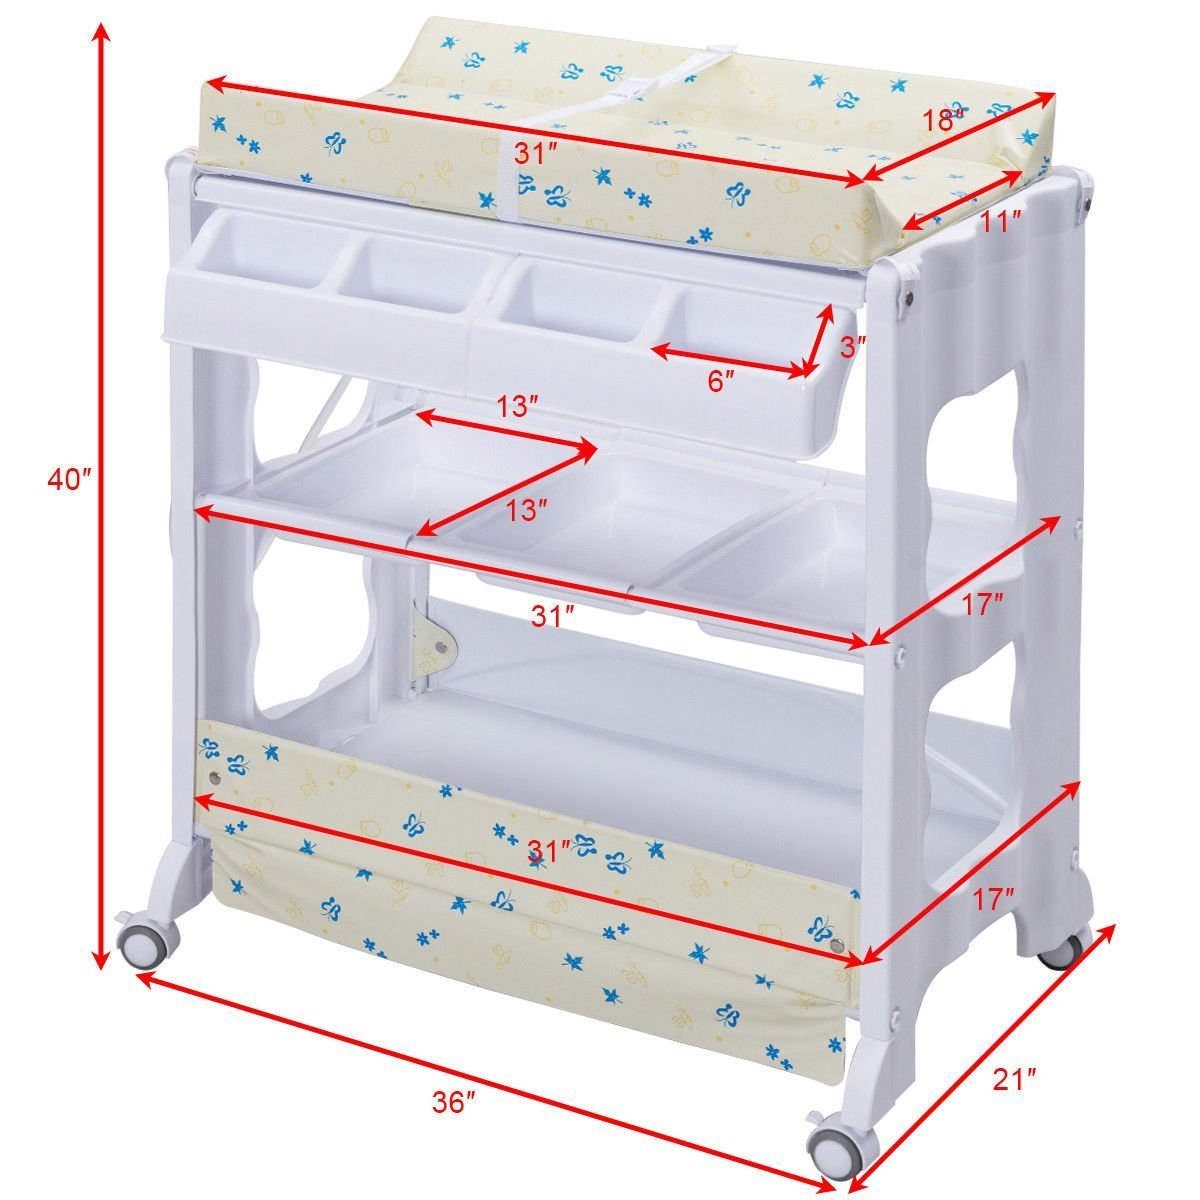 Costzon Baby Bath and Changing Table, Diaper Organizer for Infant with Tube & Cushion (Beige) by Costzon (Image #7)